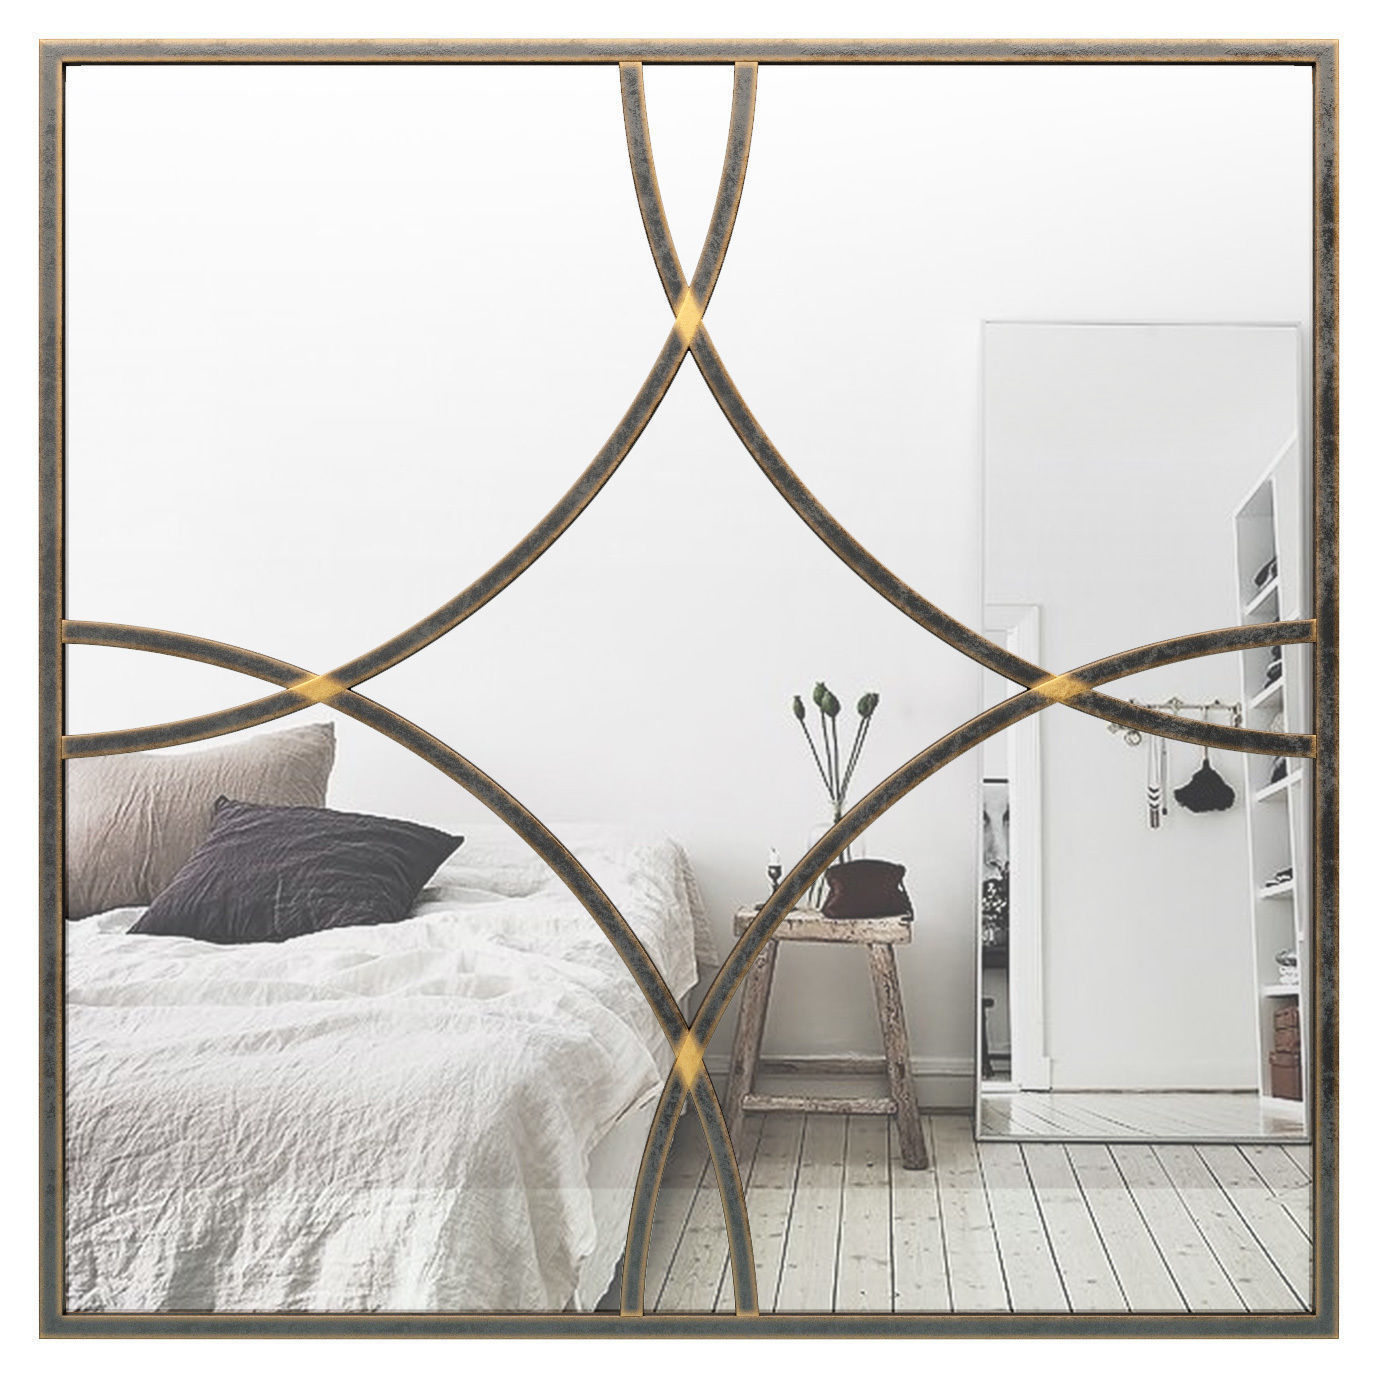 Allaryce Square Medallion Metal Accent Mirror Tcdt1004 | 3D Model Intended For Medallion Accent Mirrors (Image 3 of 20)